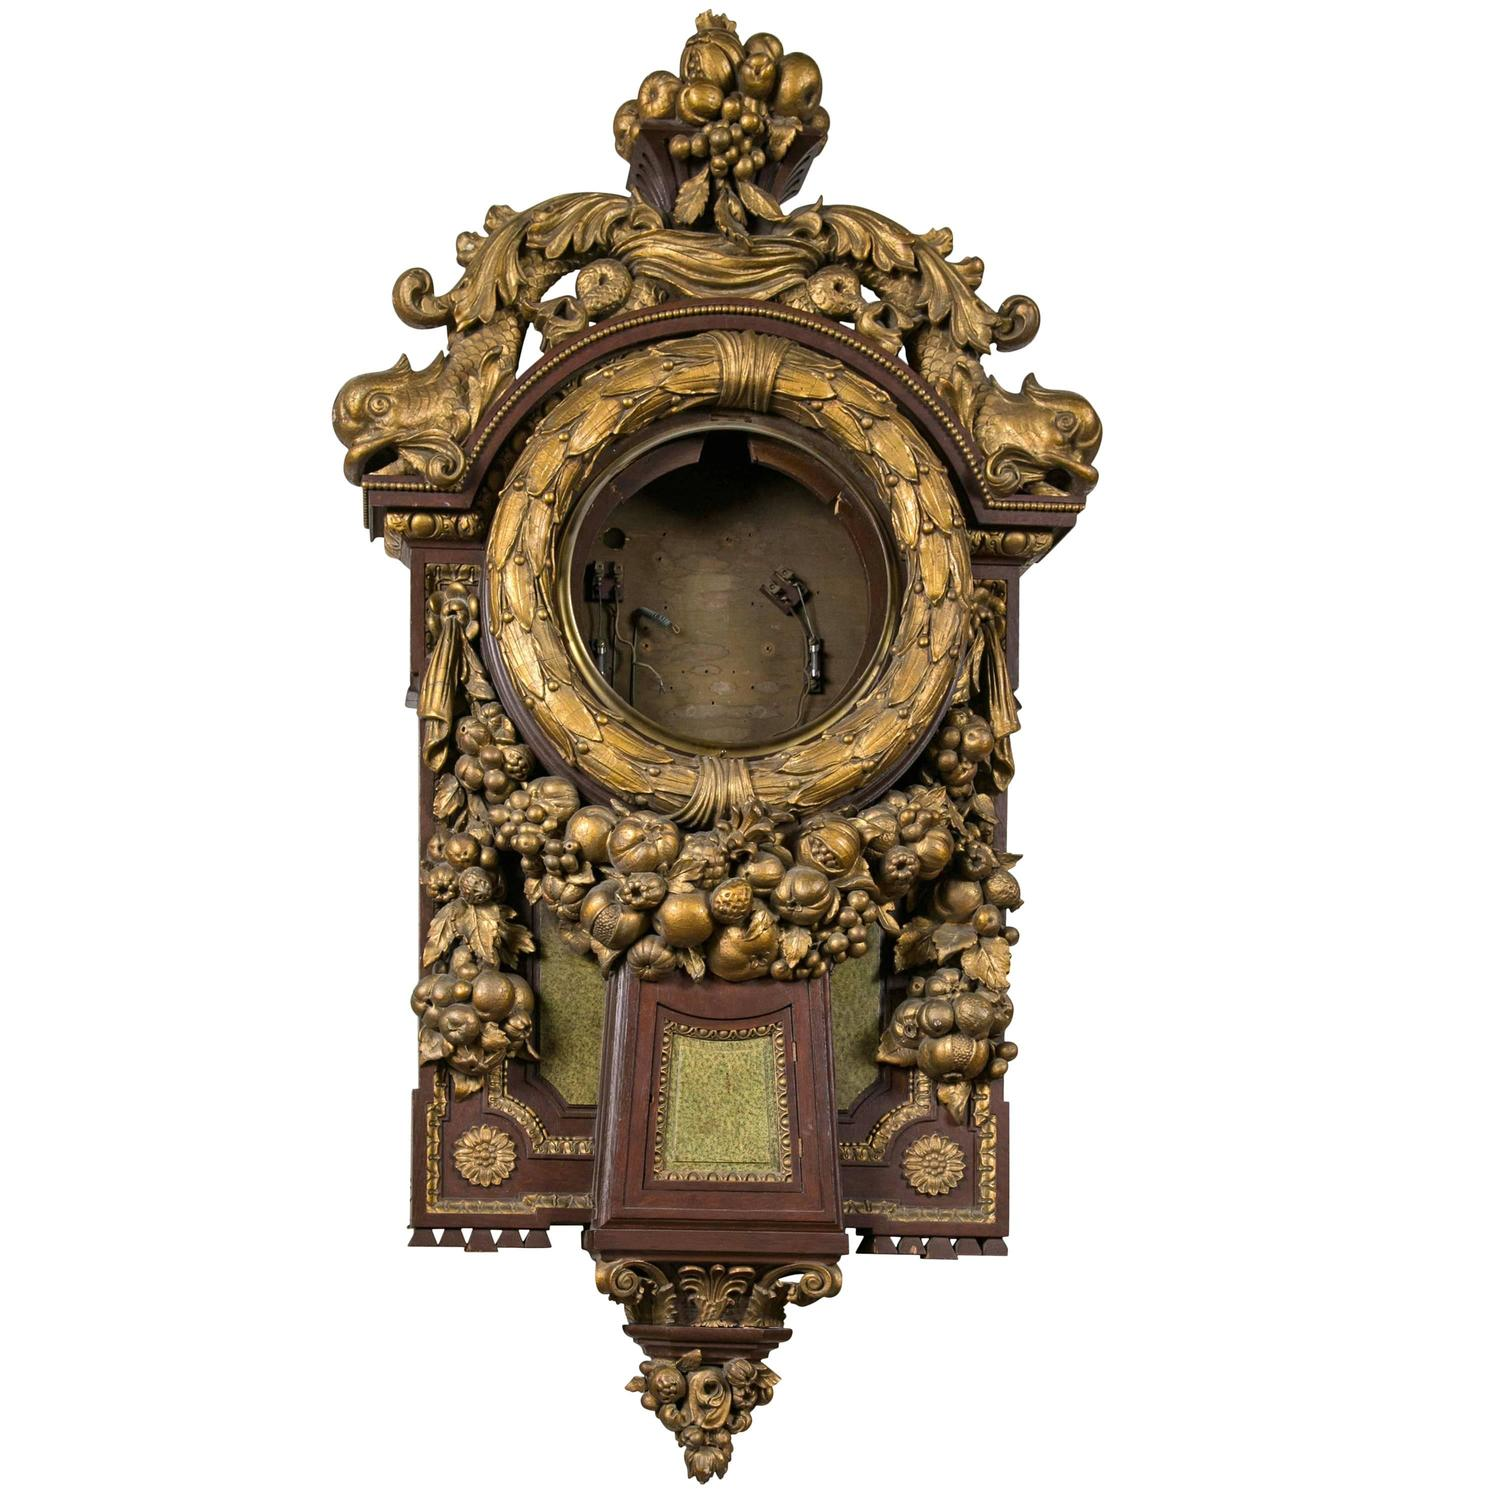 Unusual Wall Hanging Clock Case For Sale At 1stdibs